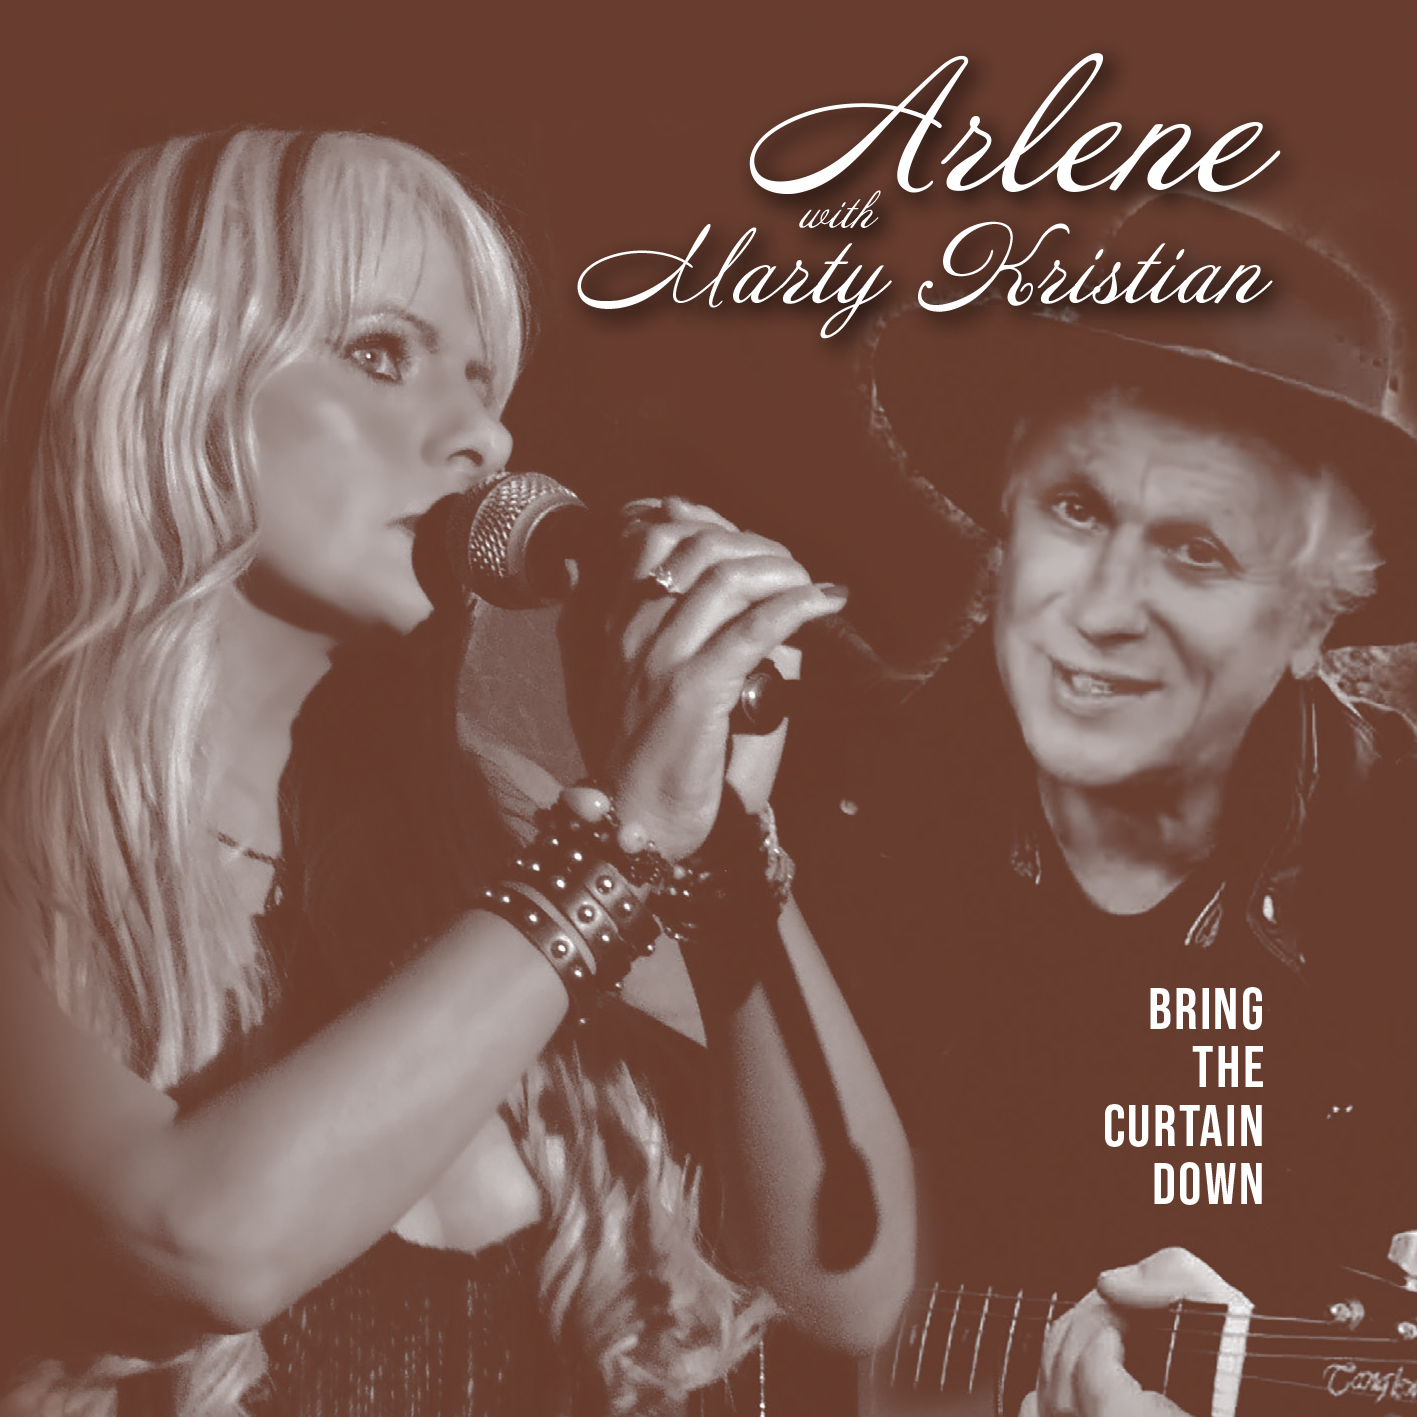 ARLENE-BRING THE CURTAIN DOWN-FRONT (14)